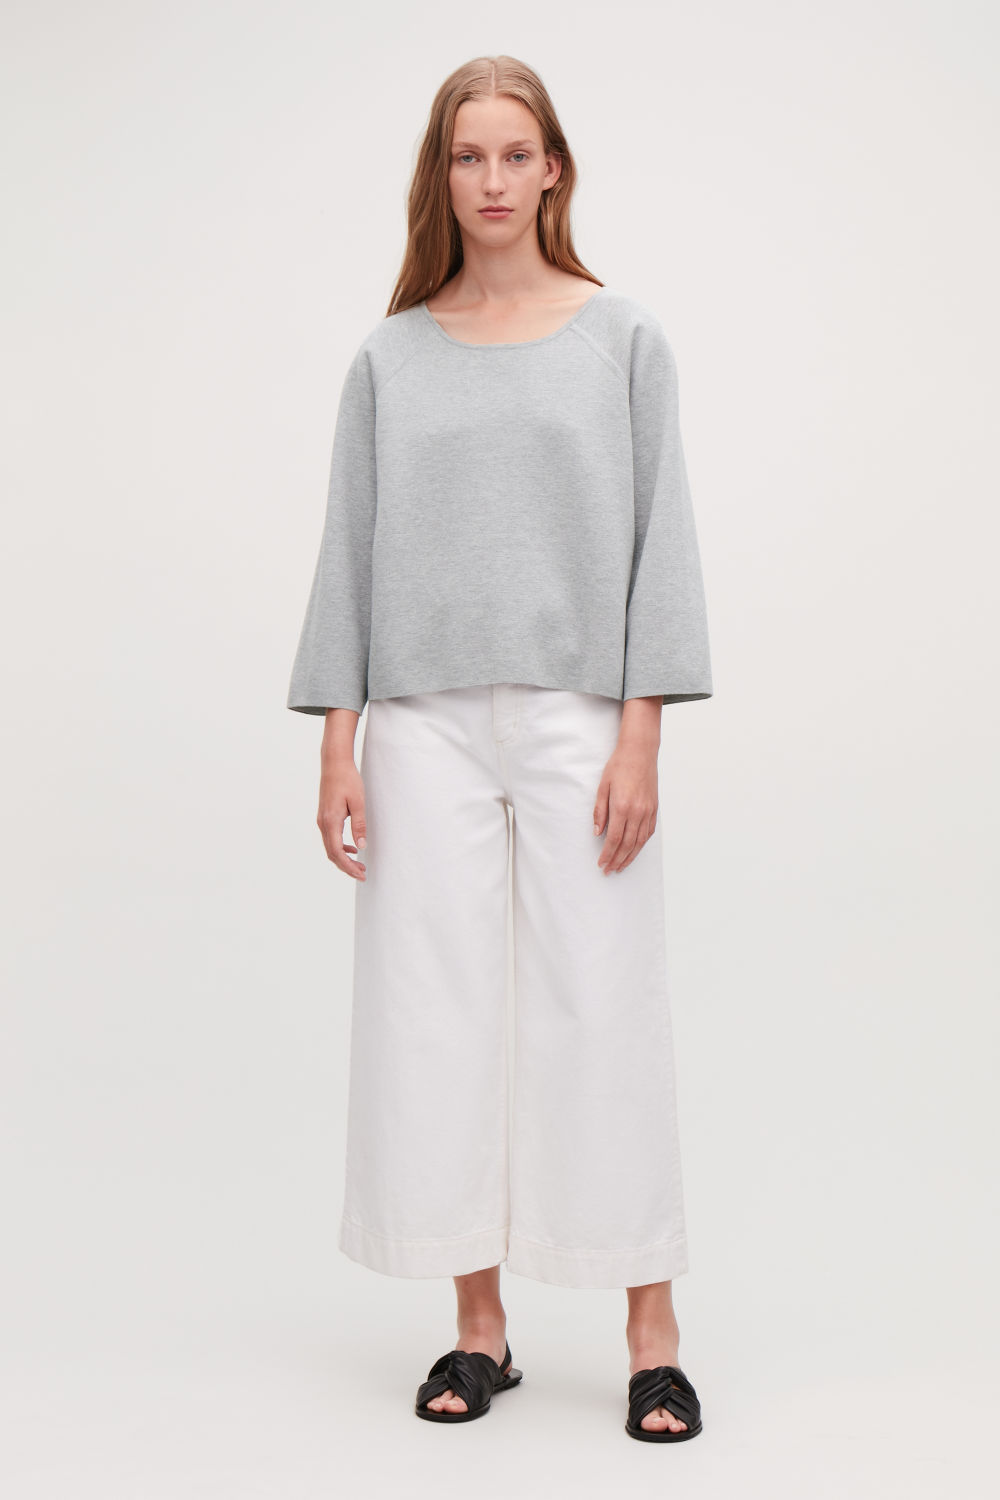 COTTON-CASHMERE KNIT TOP